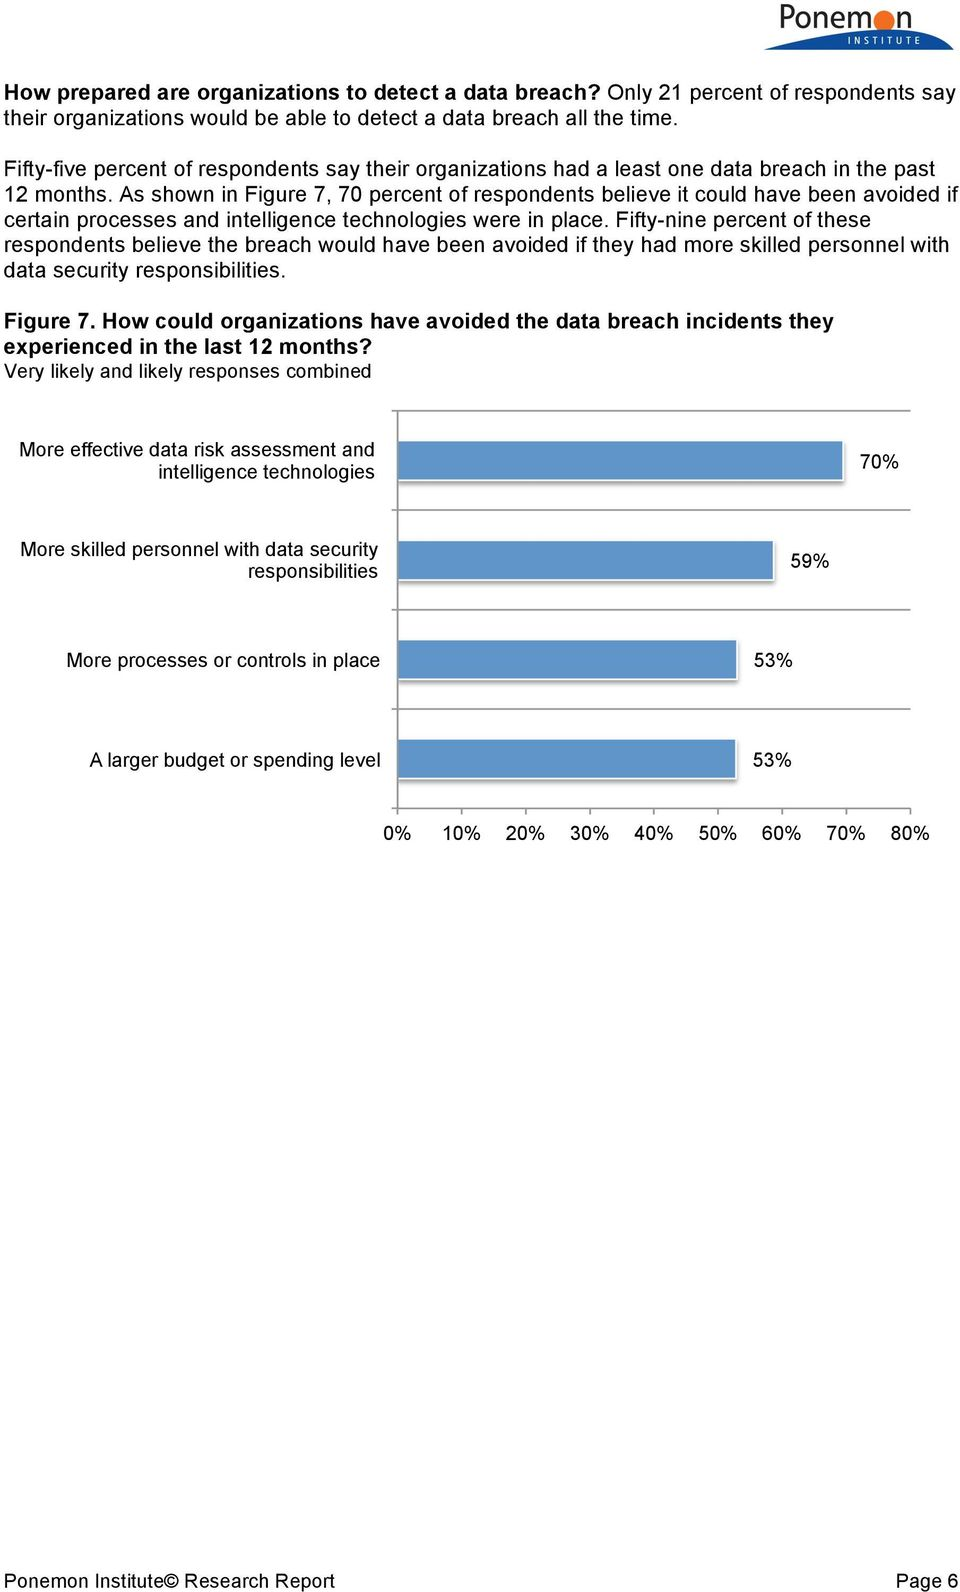 As shown in Figure 7, 70 percent of respondents believe it could have been avoided if certain processes and intelligence technologies were in place.